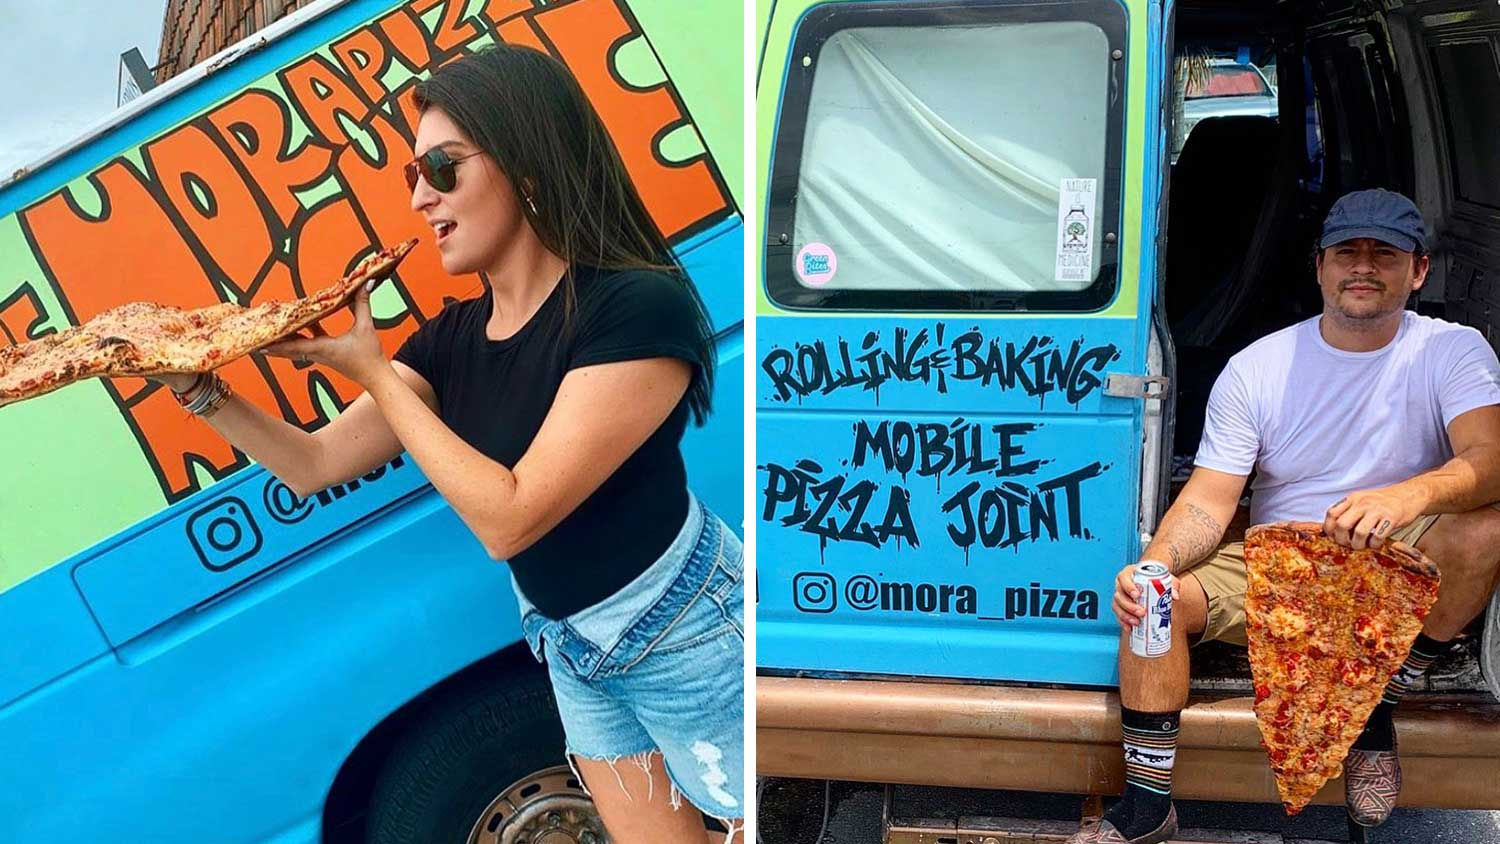 You Can Buy 2-Foot Long Vegan Pizza Slices Out of The Back of This Van